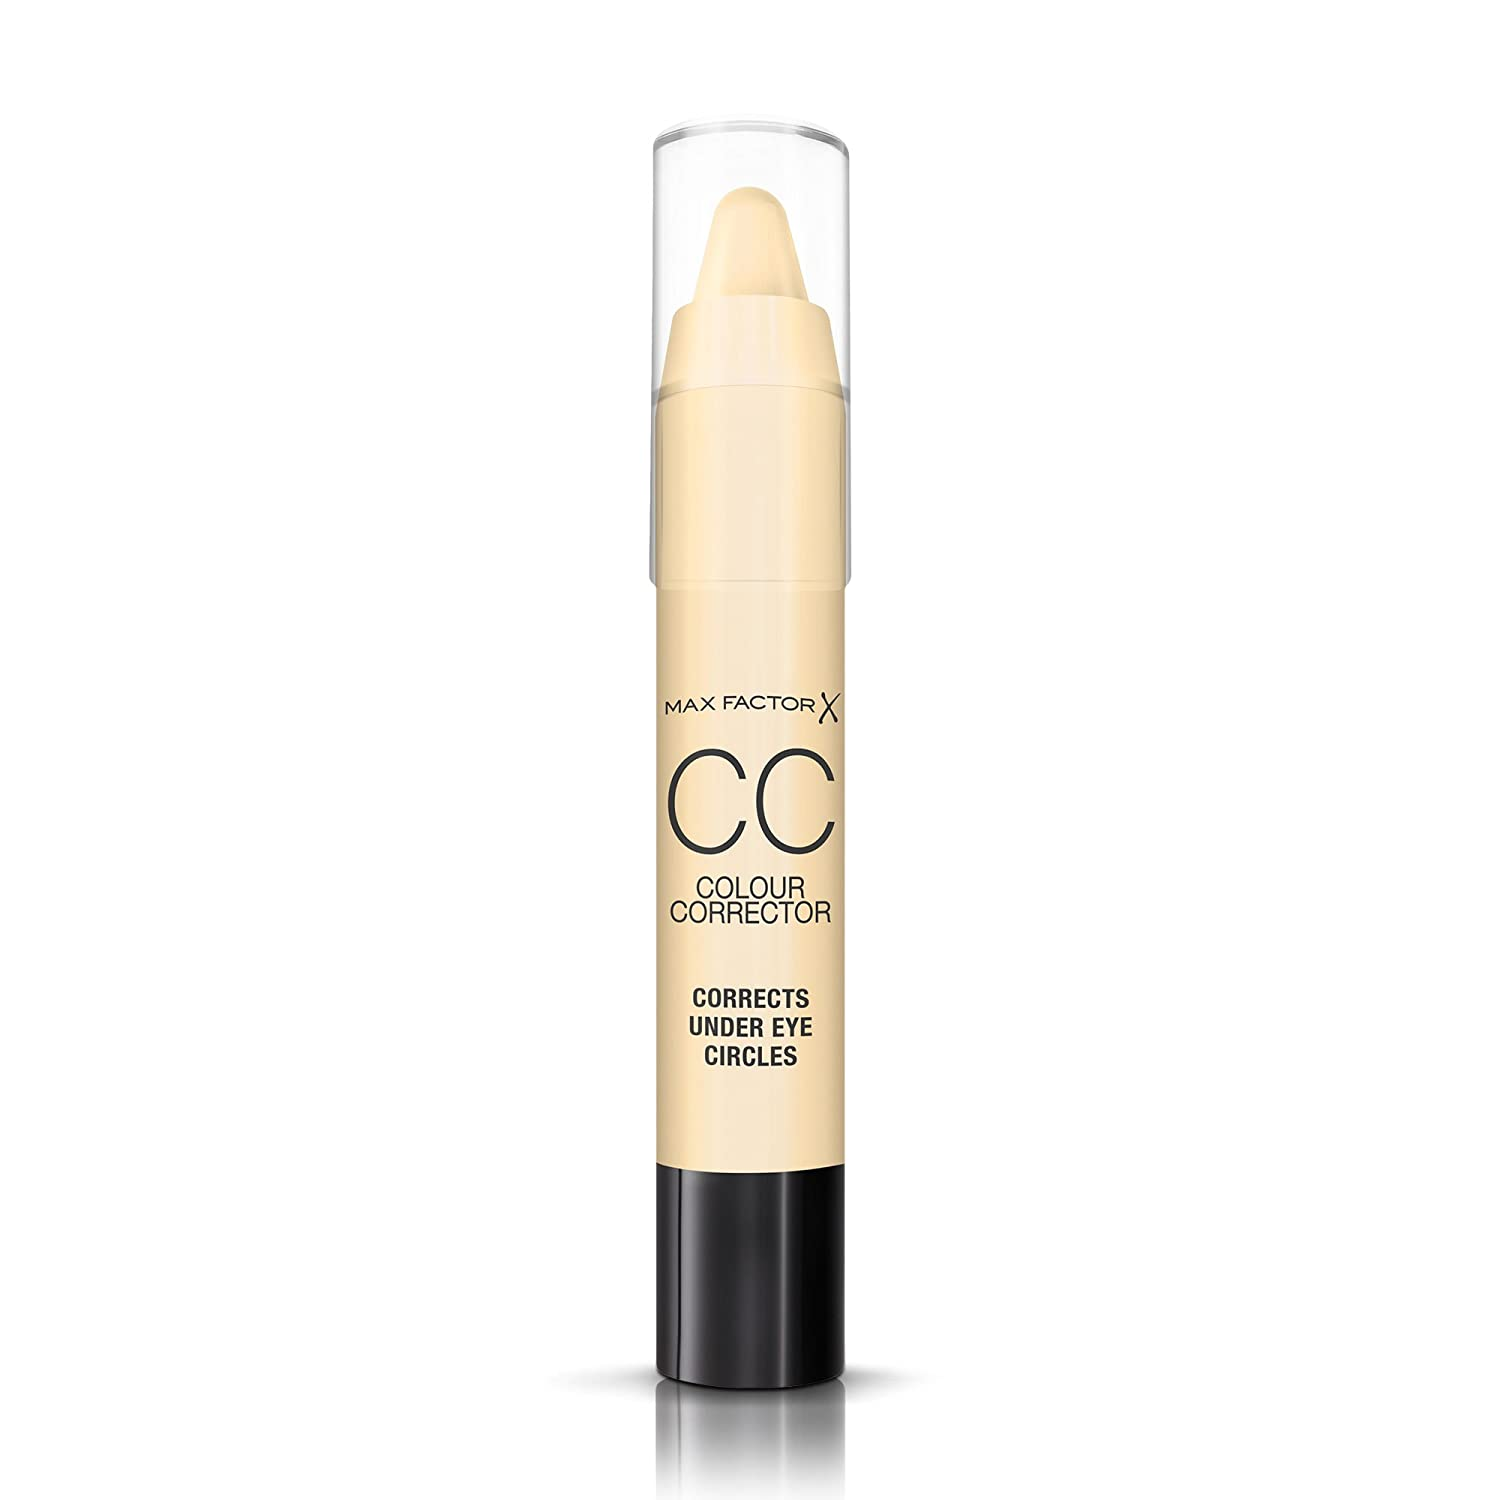 Max Factor CC Concealer Stick for Under Eye Circles, Yellow, 3.4 g Max Factor Make up 81549805